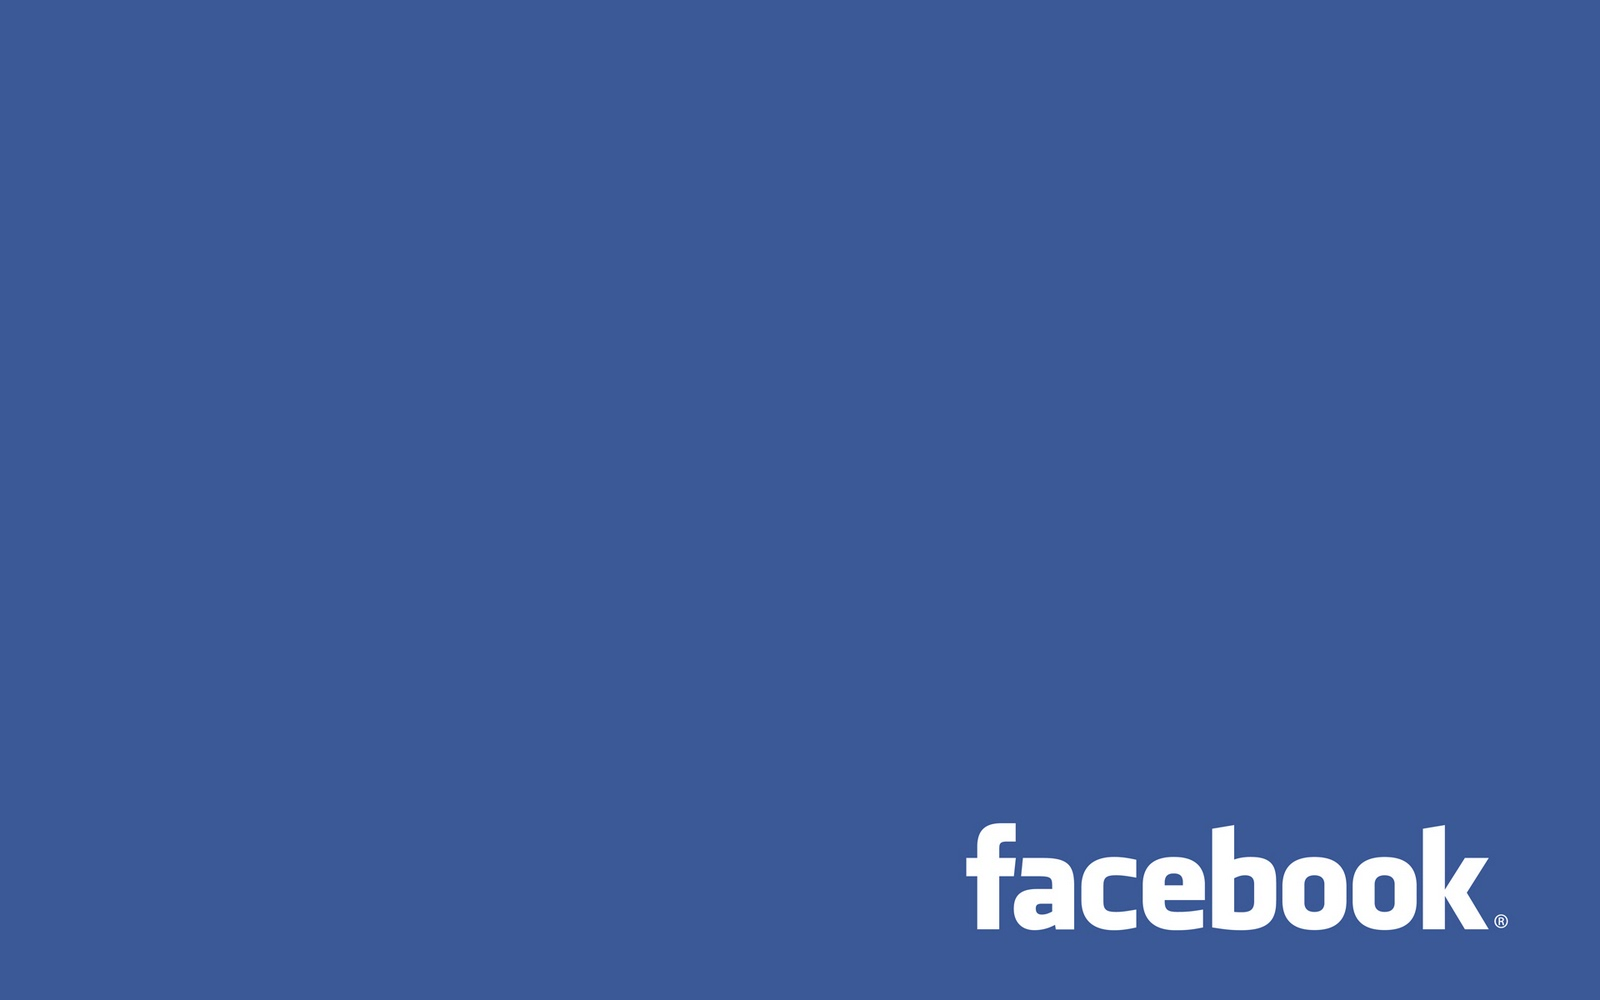 Hd Facebook Wallpapers Full Hd Pictures